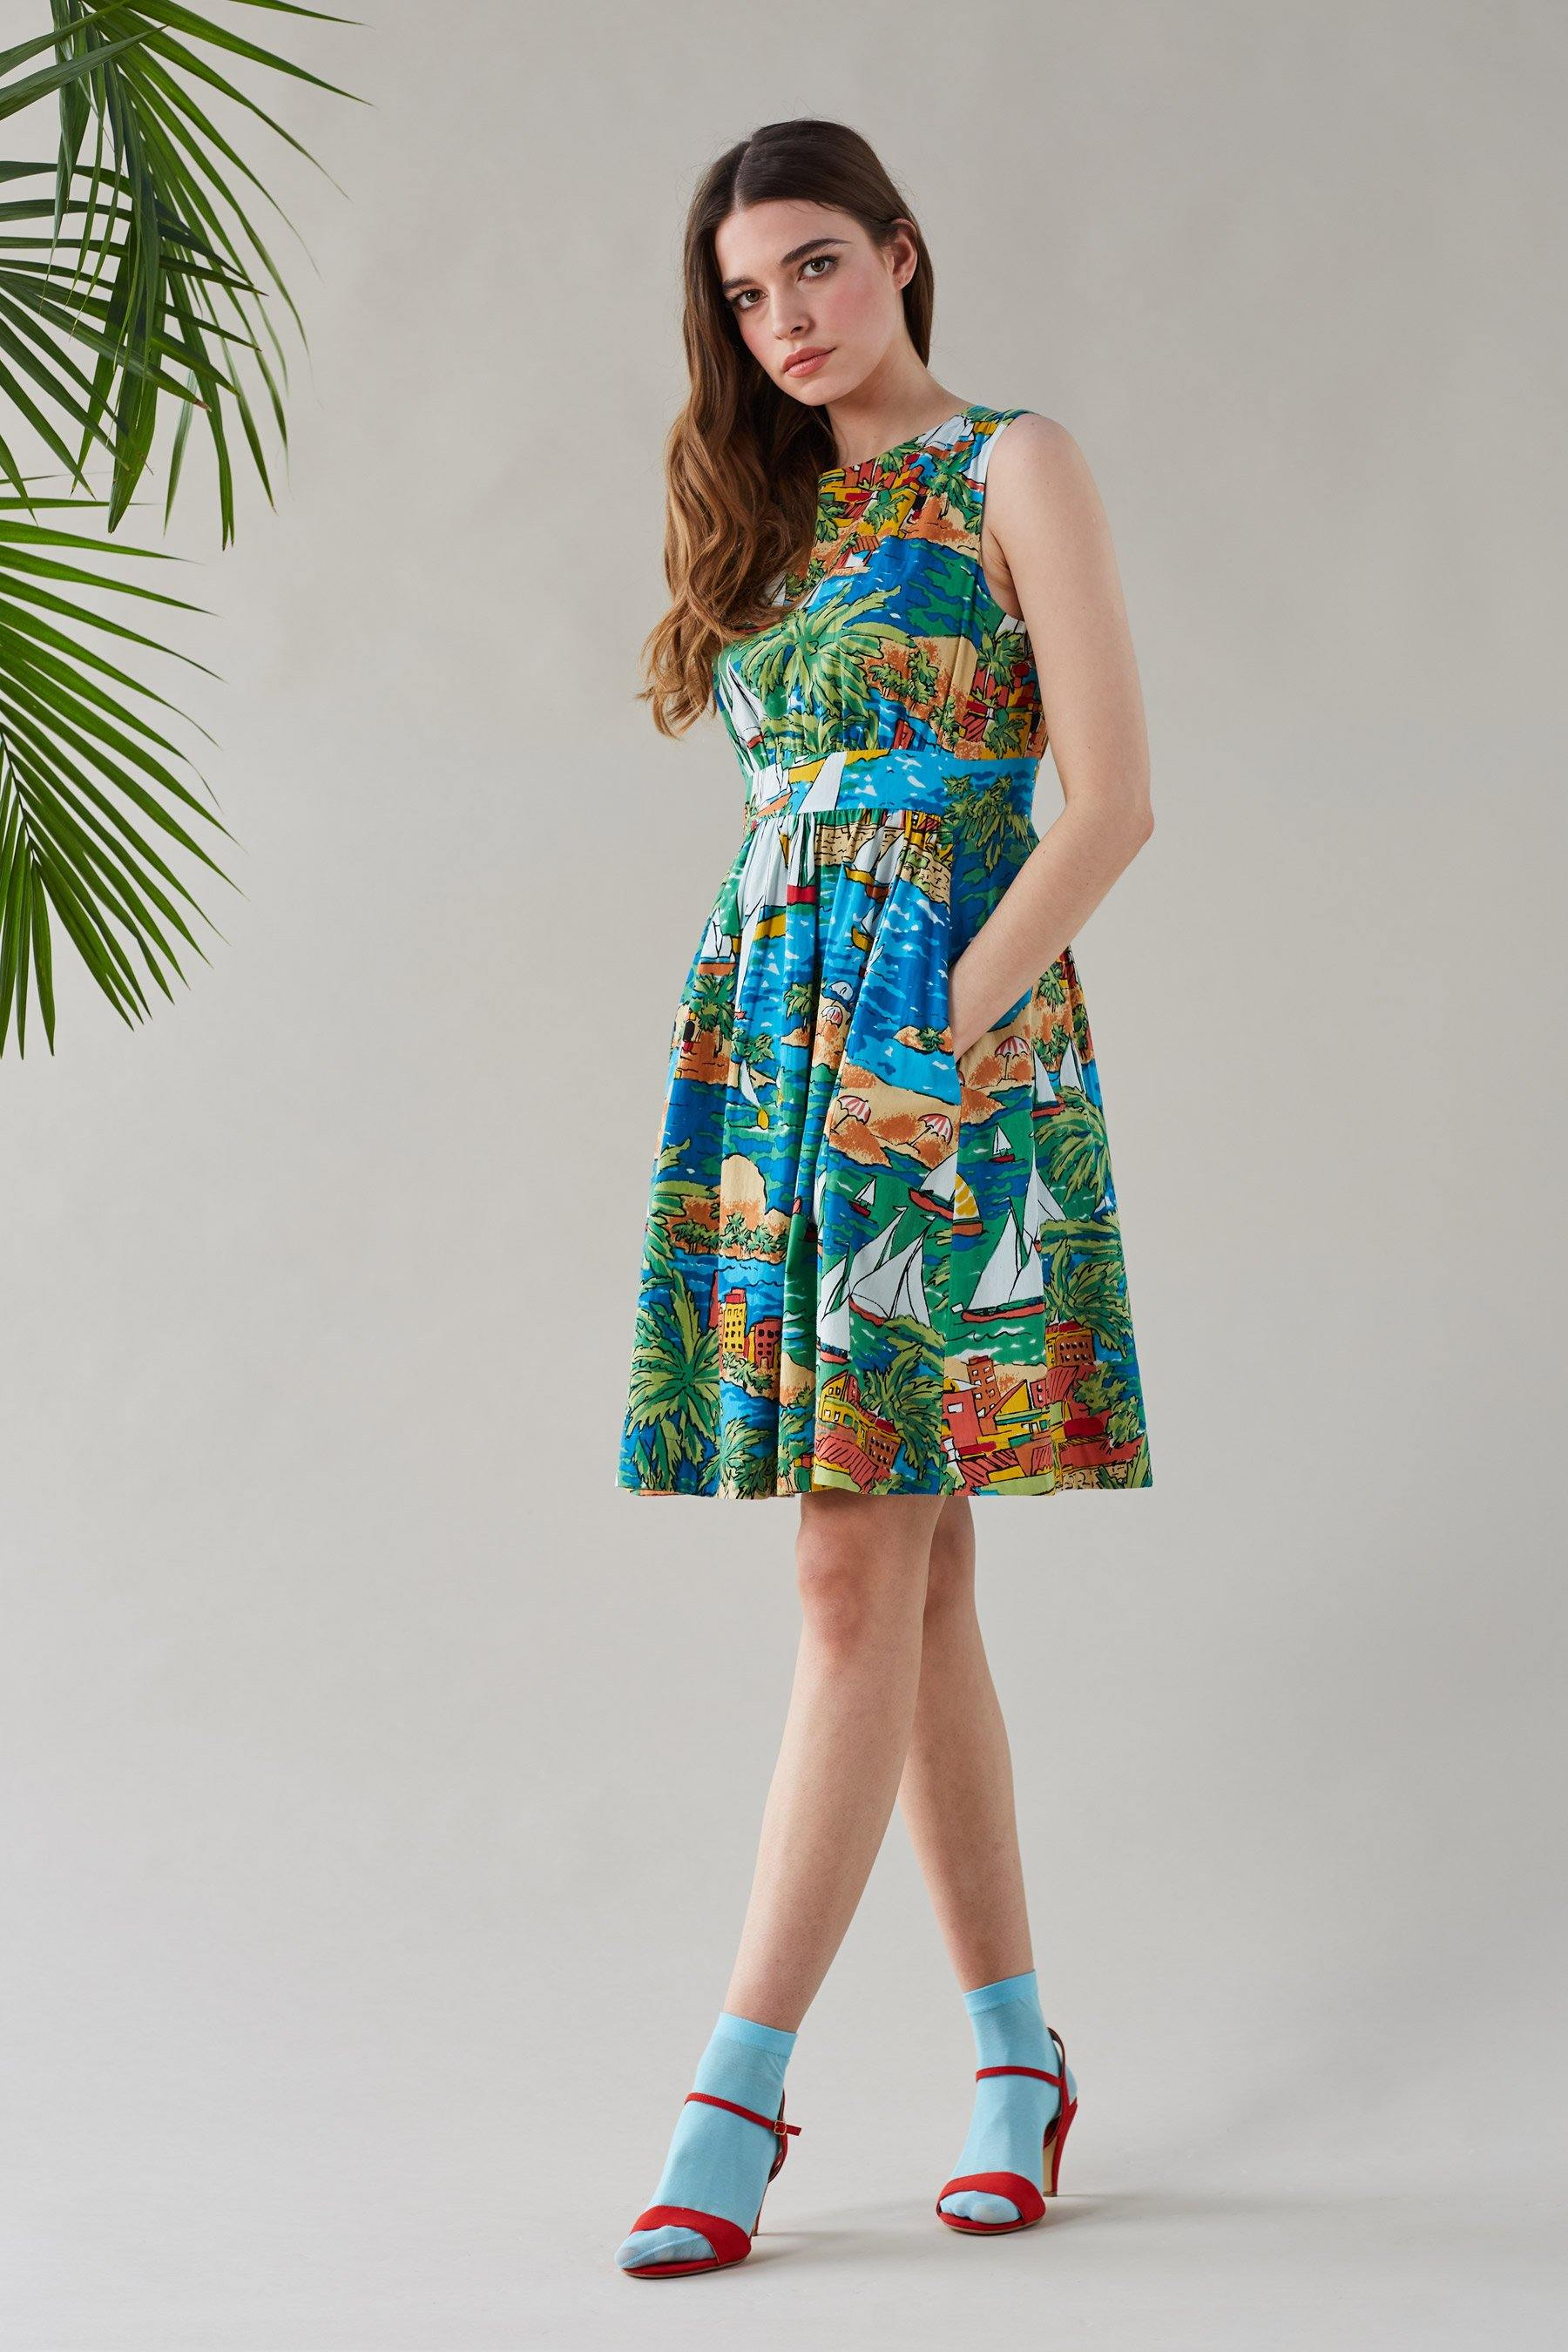 San Jose Bay Lucy Dress - BouChic